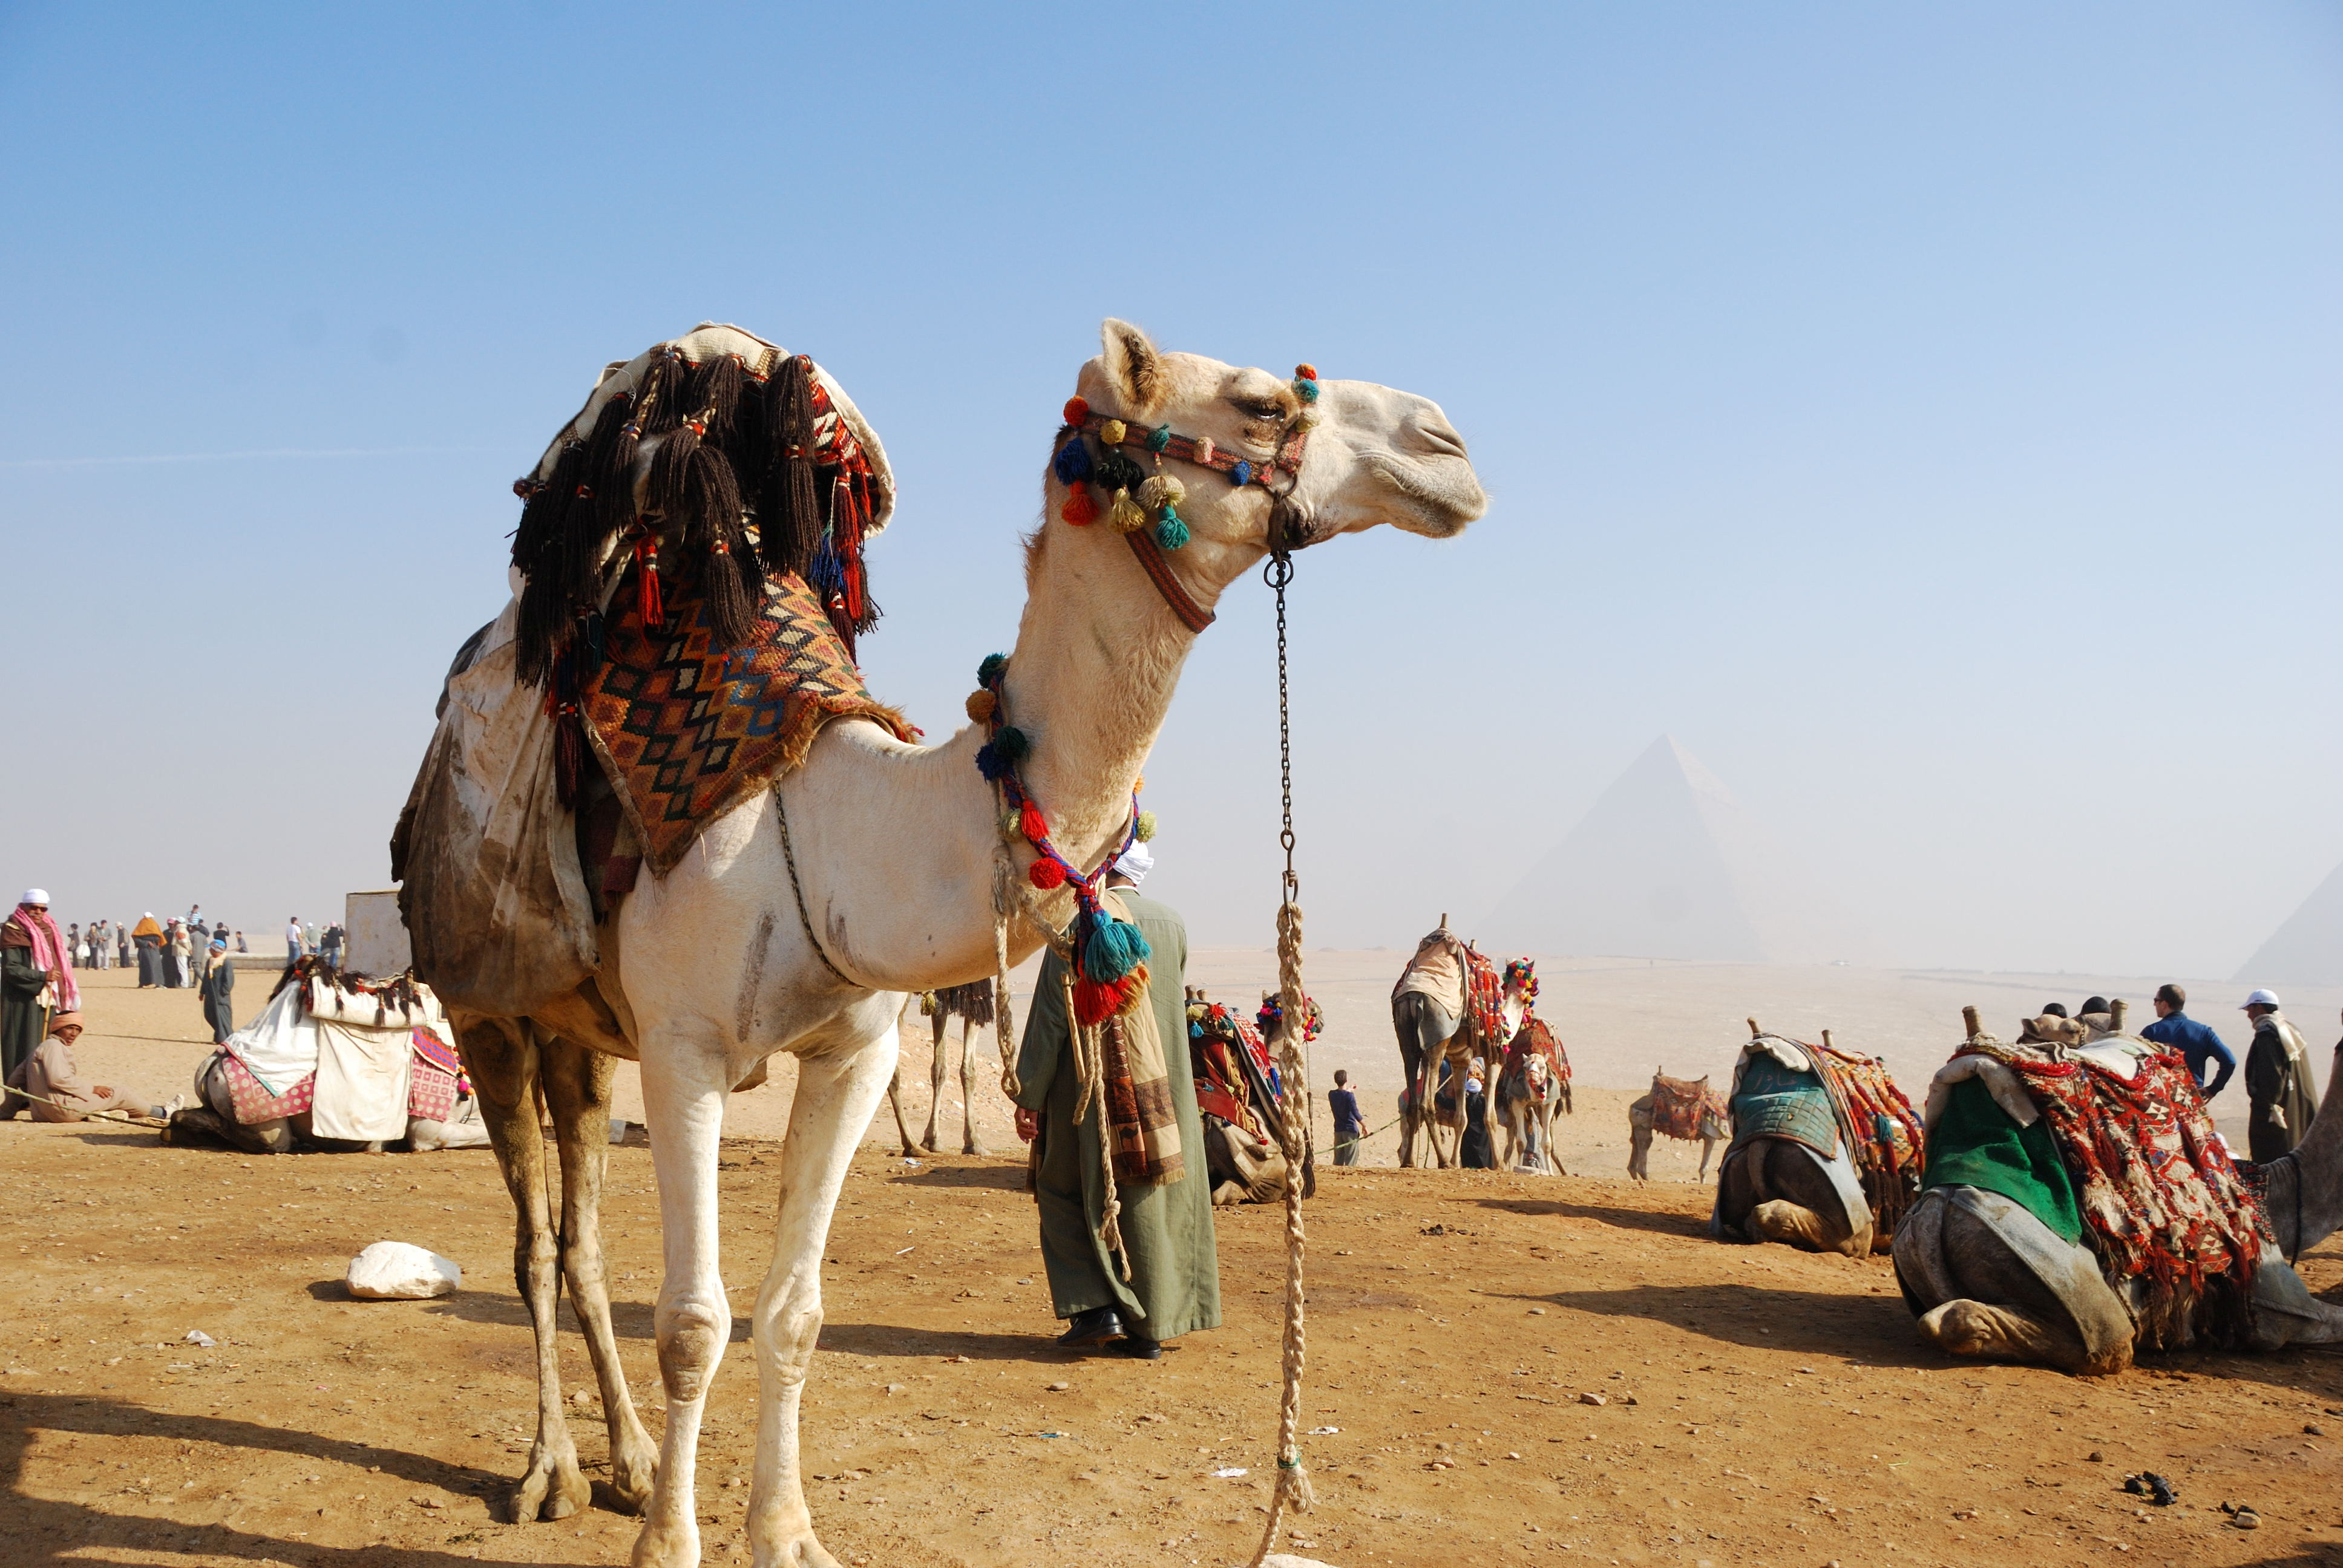 Camel for Riding in Egypt Country HD Animal Wallpapers